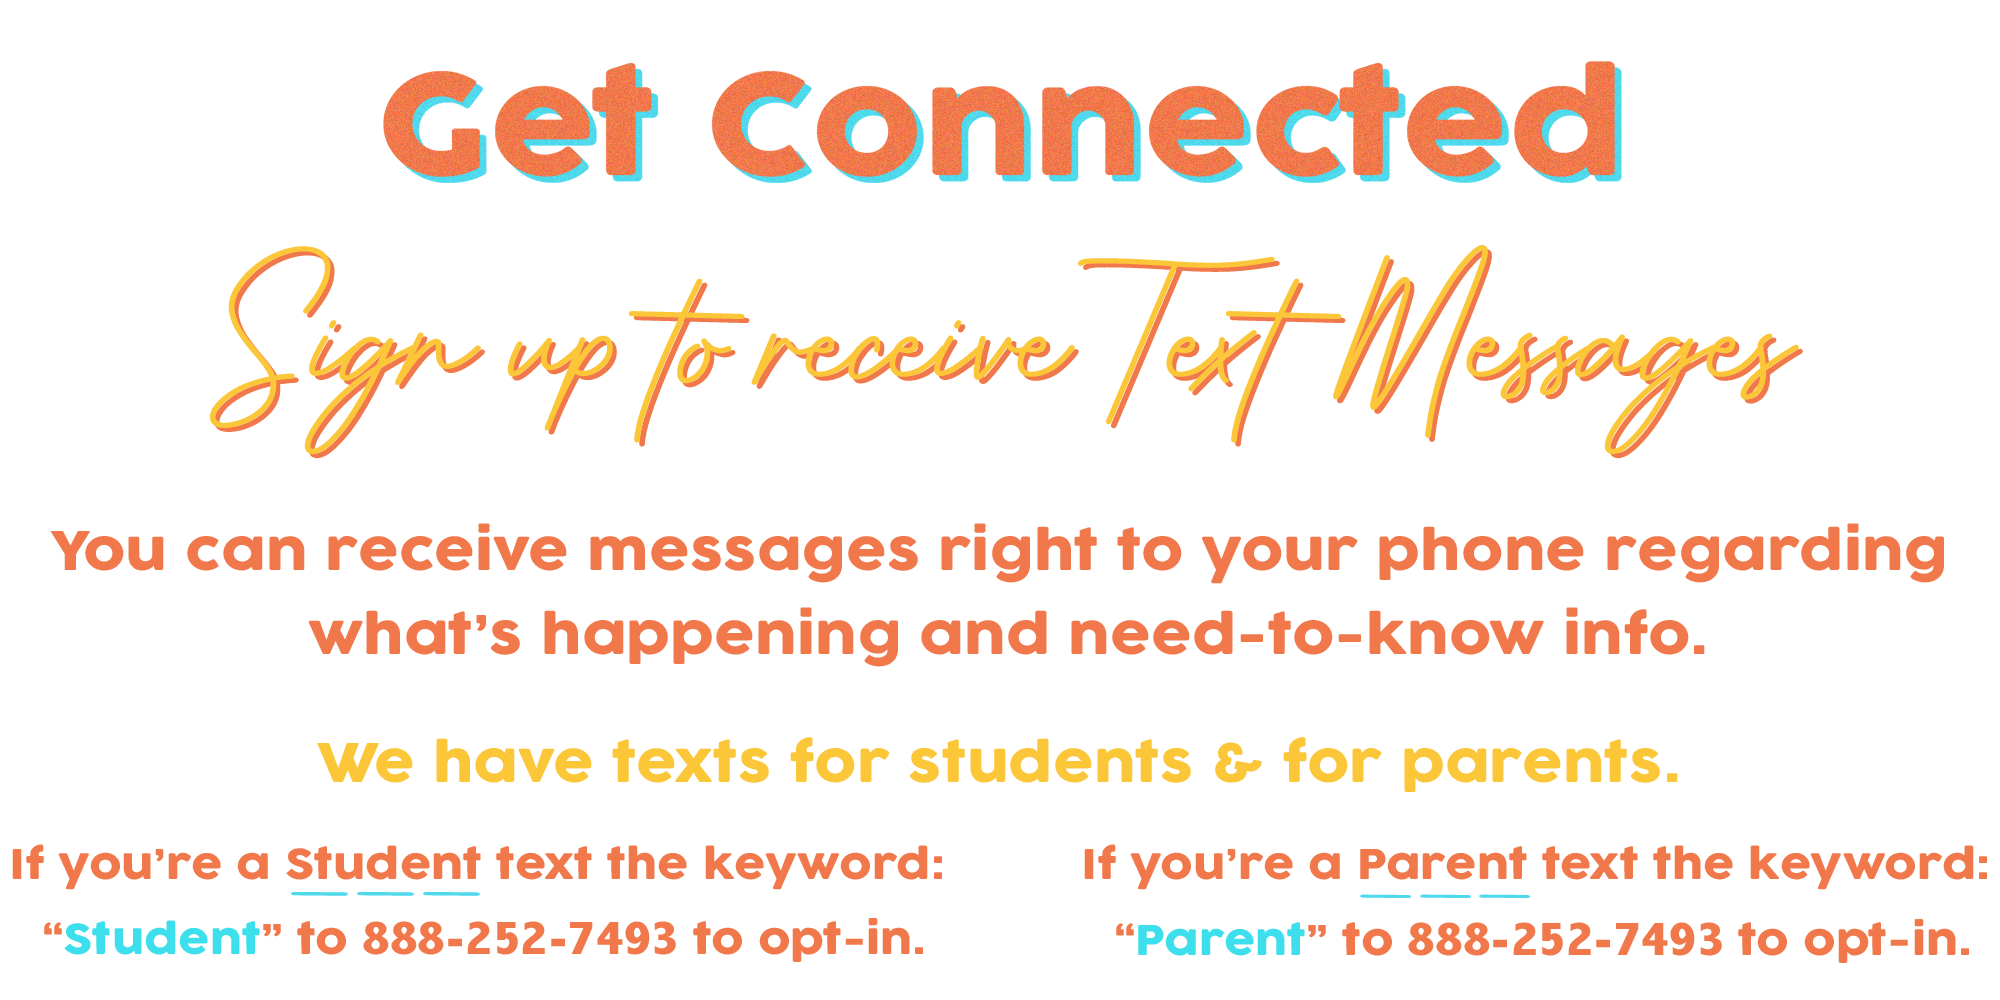 Sign up to receive text messages